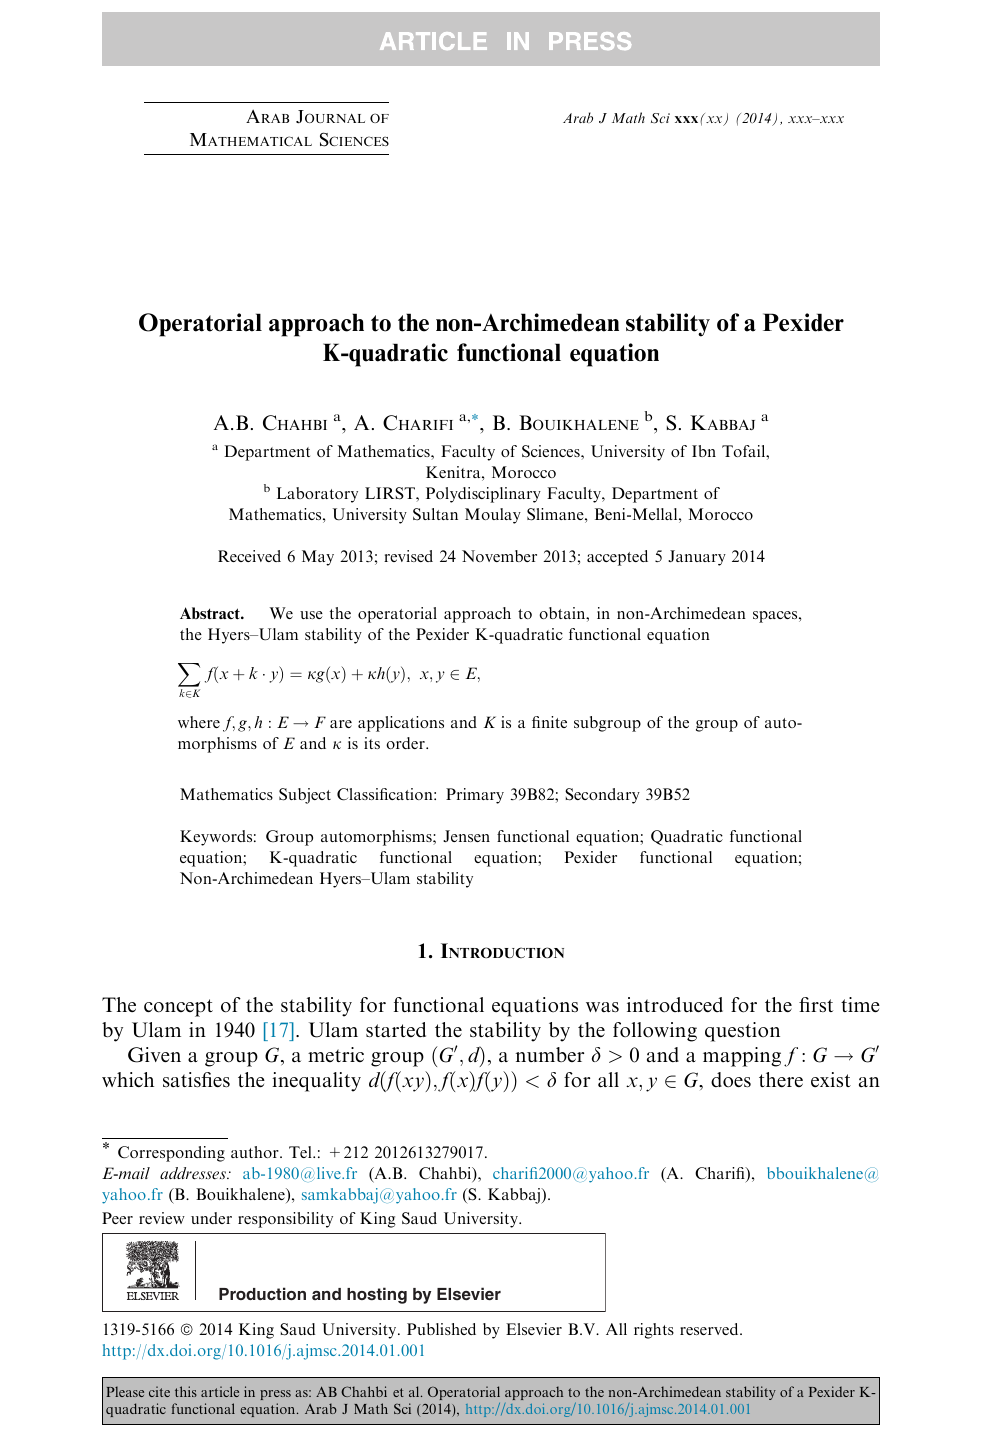 Operatorial approach to the non-Archimedean stability of a Pexider K